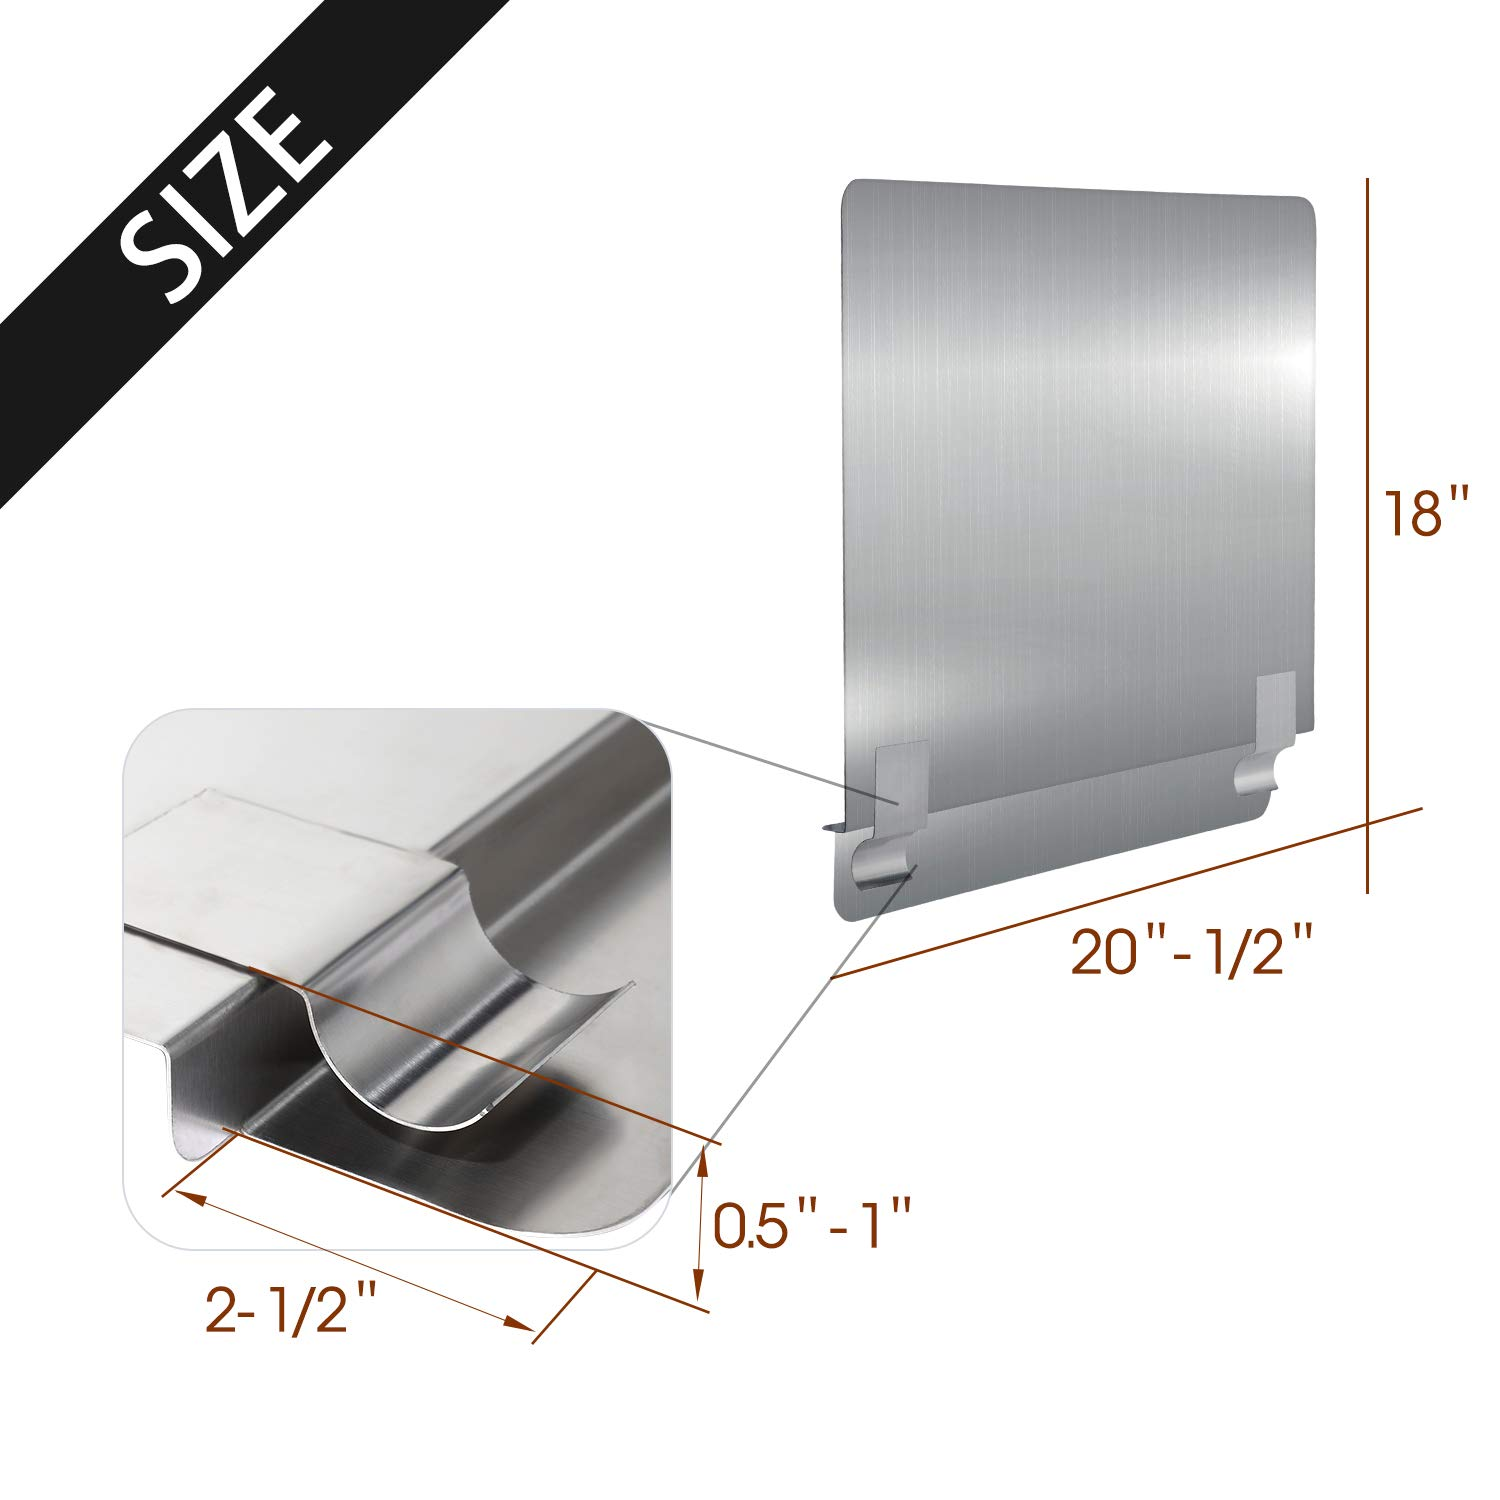 Pack of 2 Zipcase 2 packs Stainless Steel 20-1//2 W x 18 H Universal Side Splash for Commercial Fryers fitting 0.5-1 Side